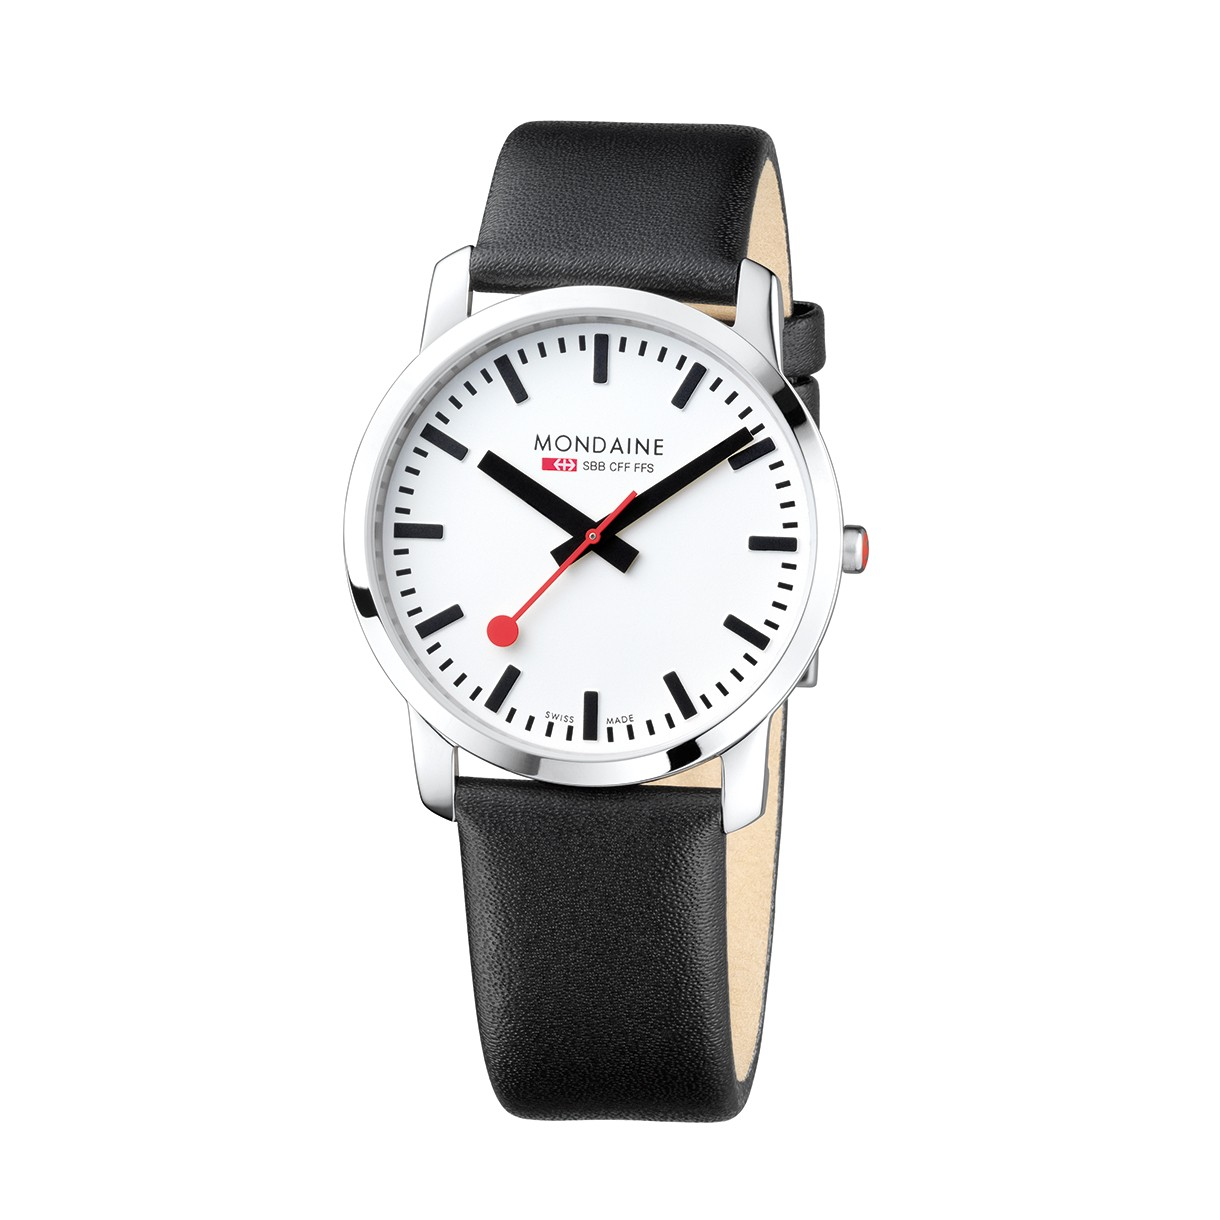 Mondaine swiss watch SIMPLY ELEGANT GENTS - A638.30350.11SBB